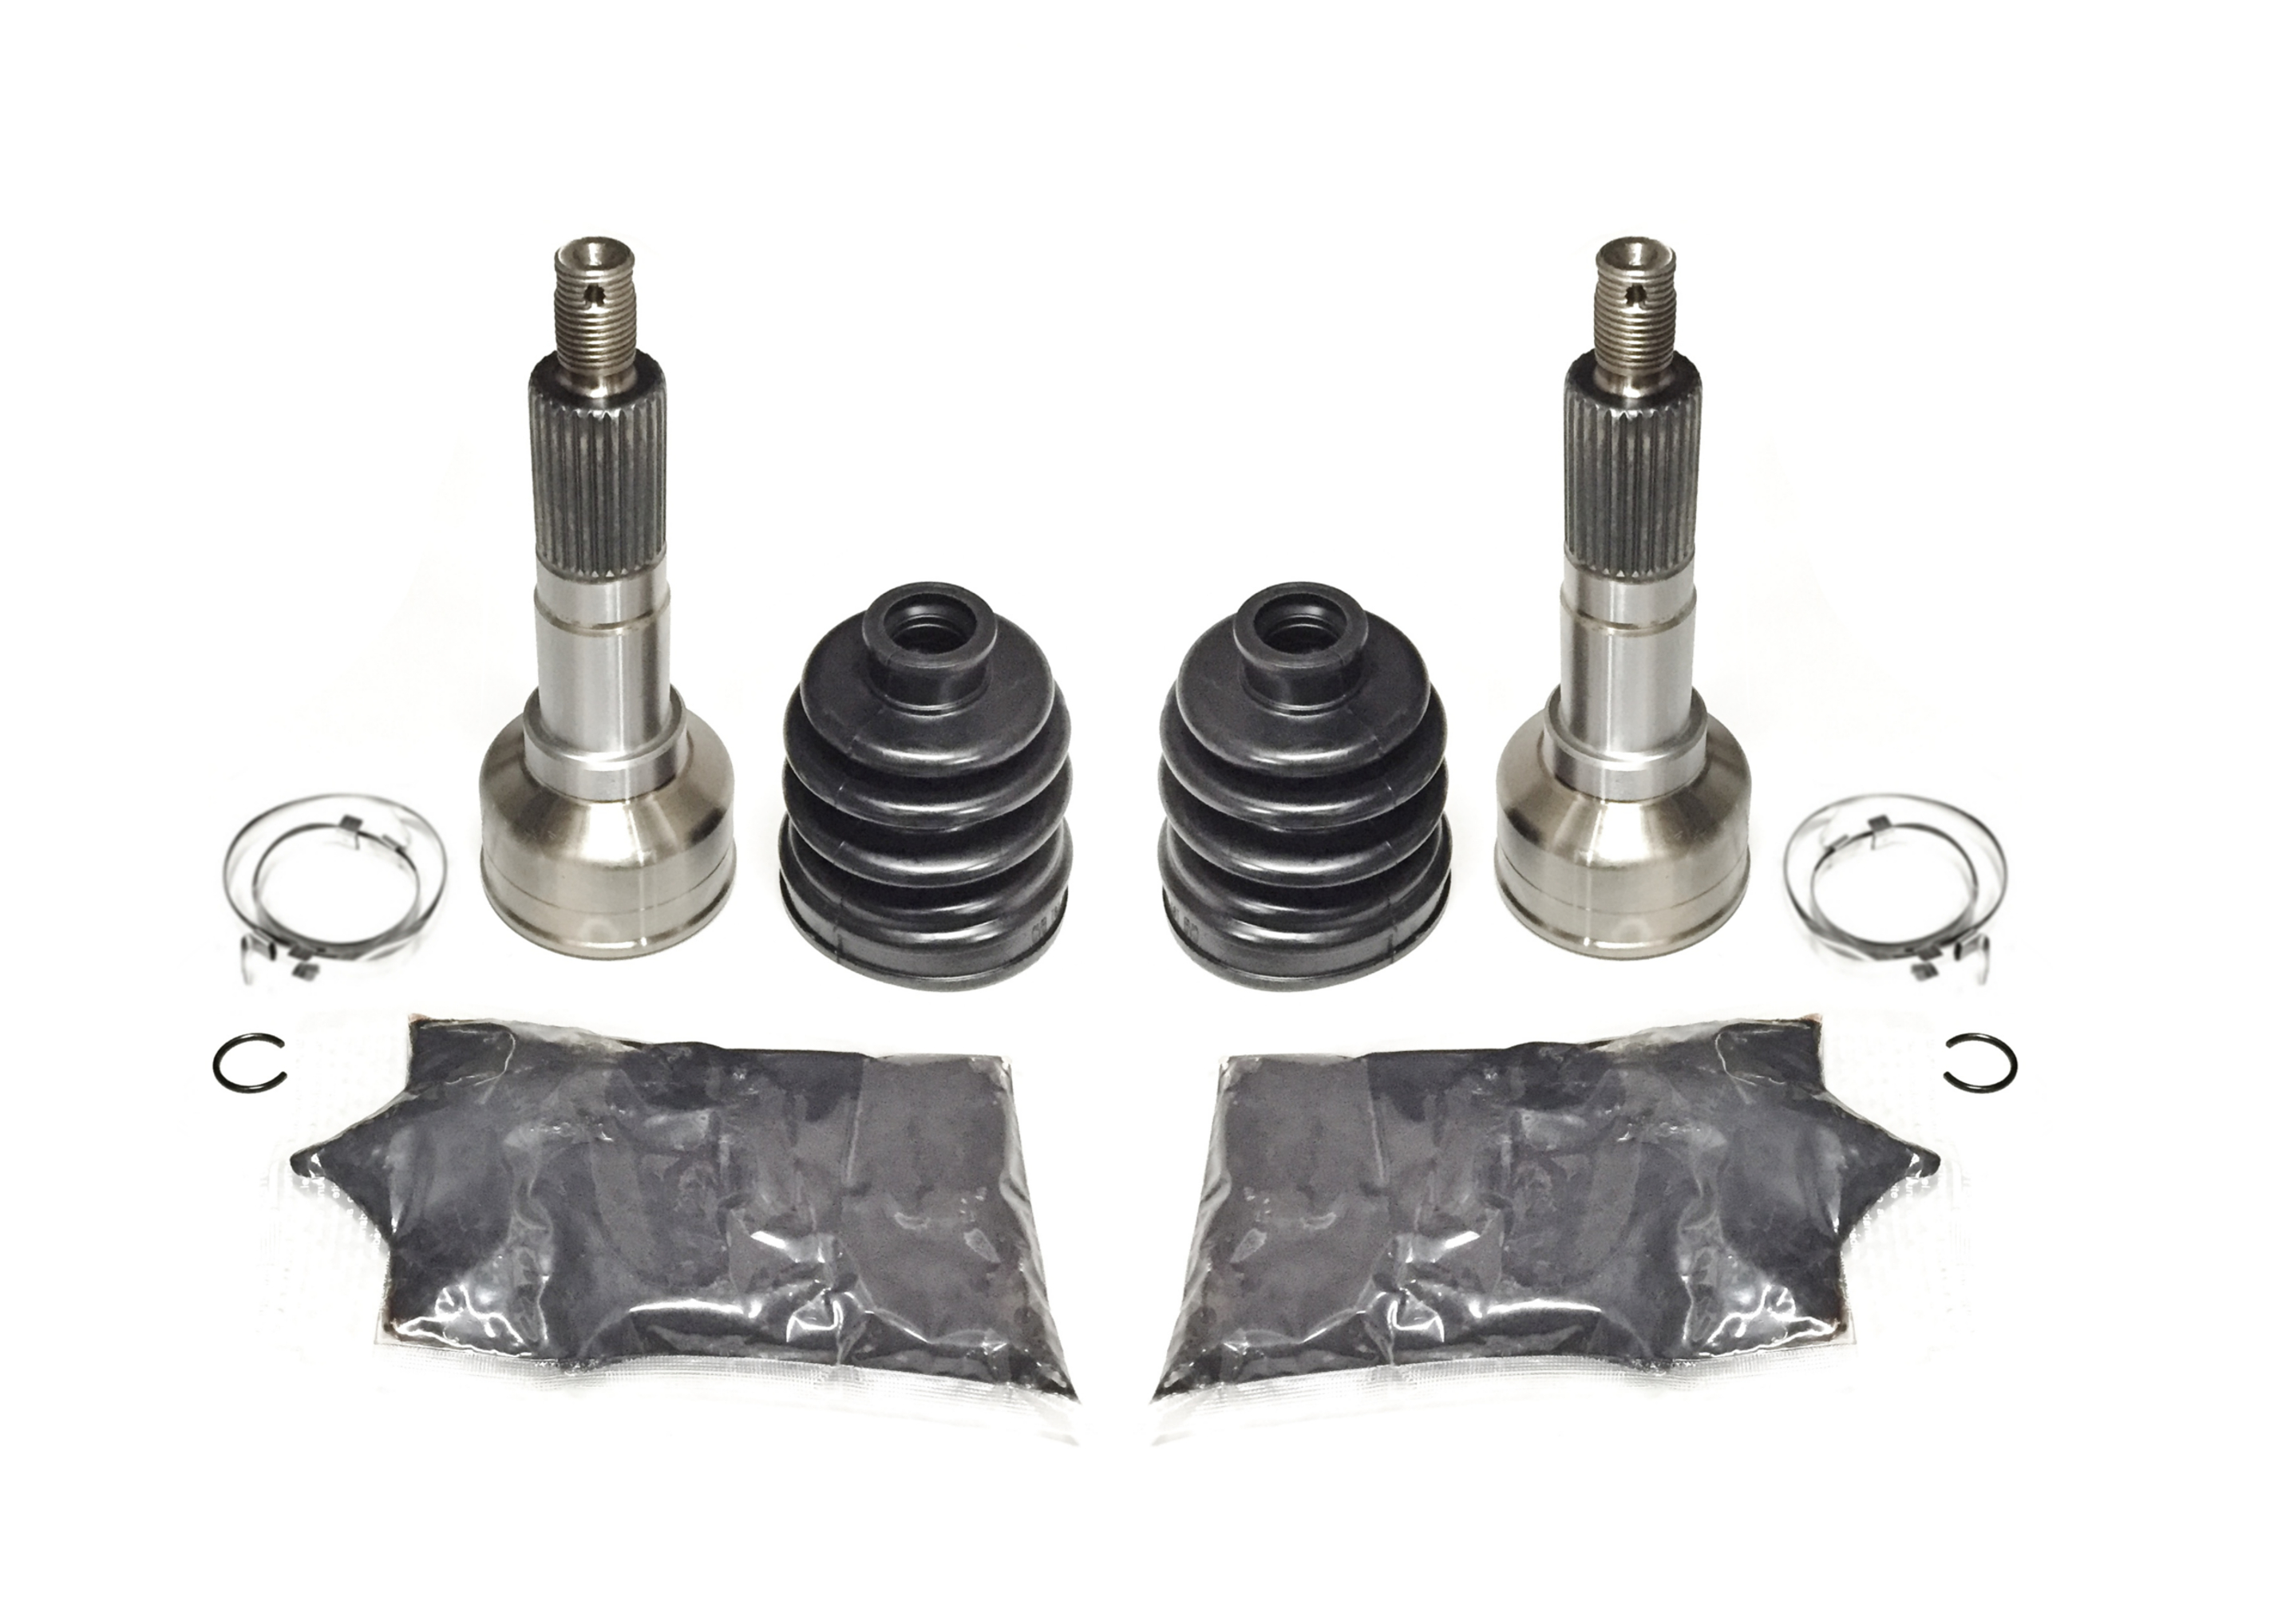 Pack of 4 Front Inner /& Outer CV Boot Kits 1998-2001 Yamaha Grizzly 600 4x4